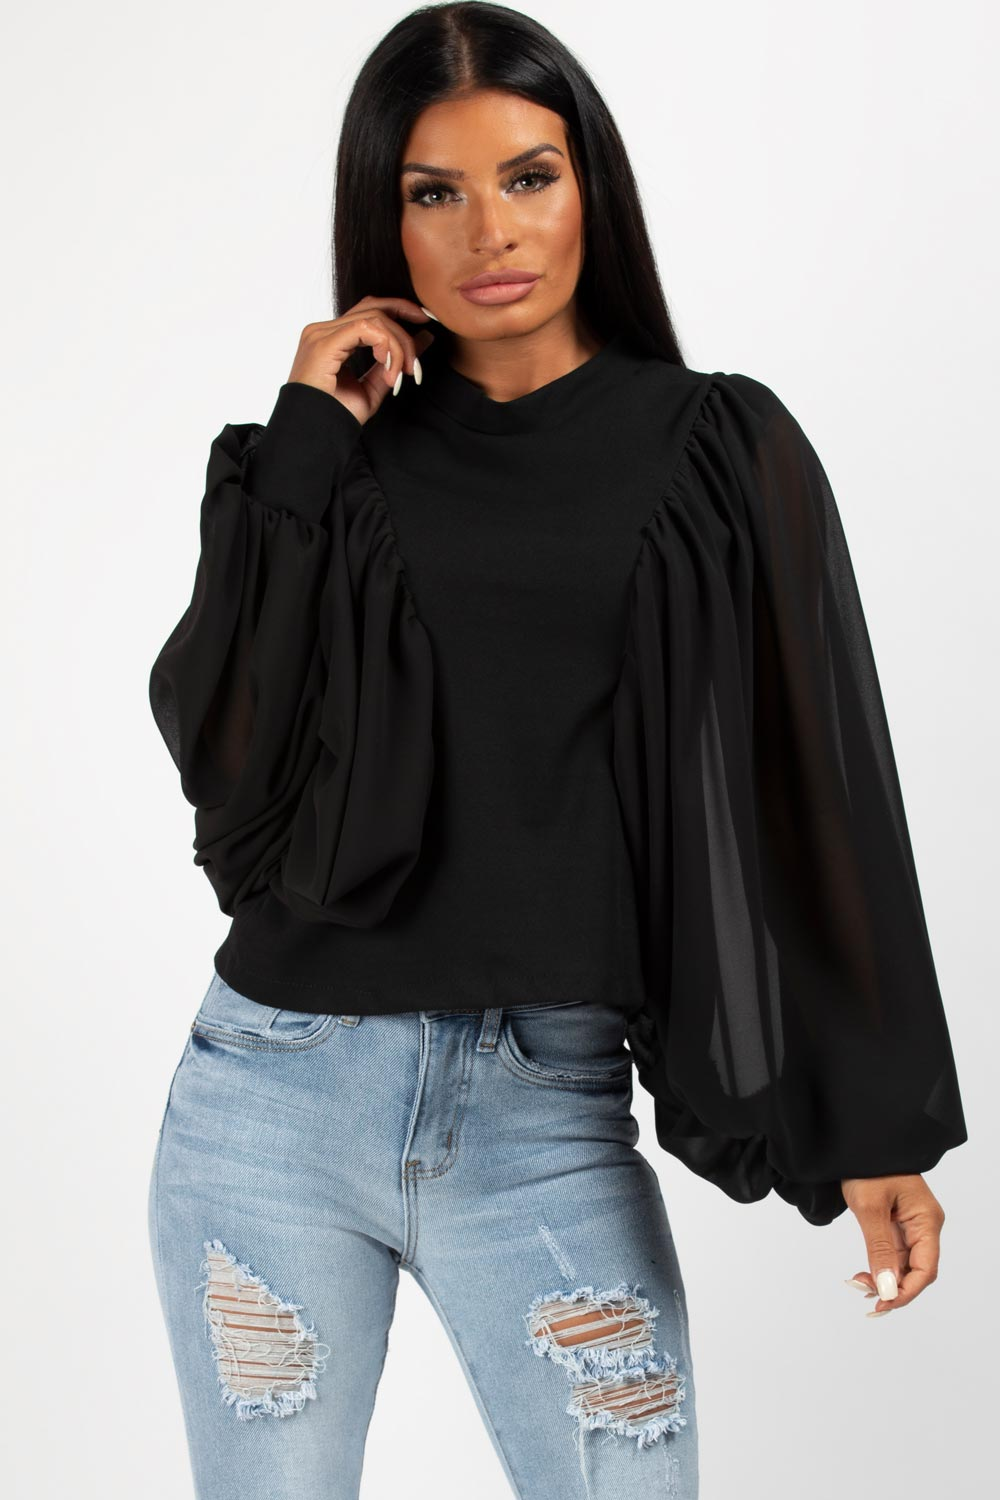 black chiffon sleeve top